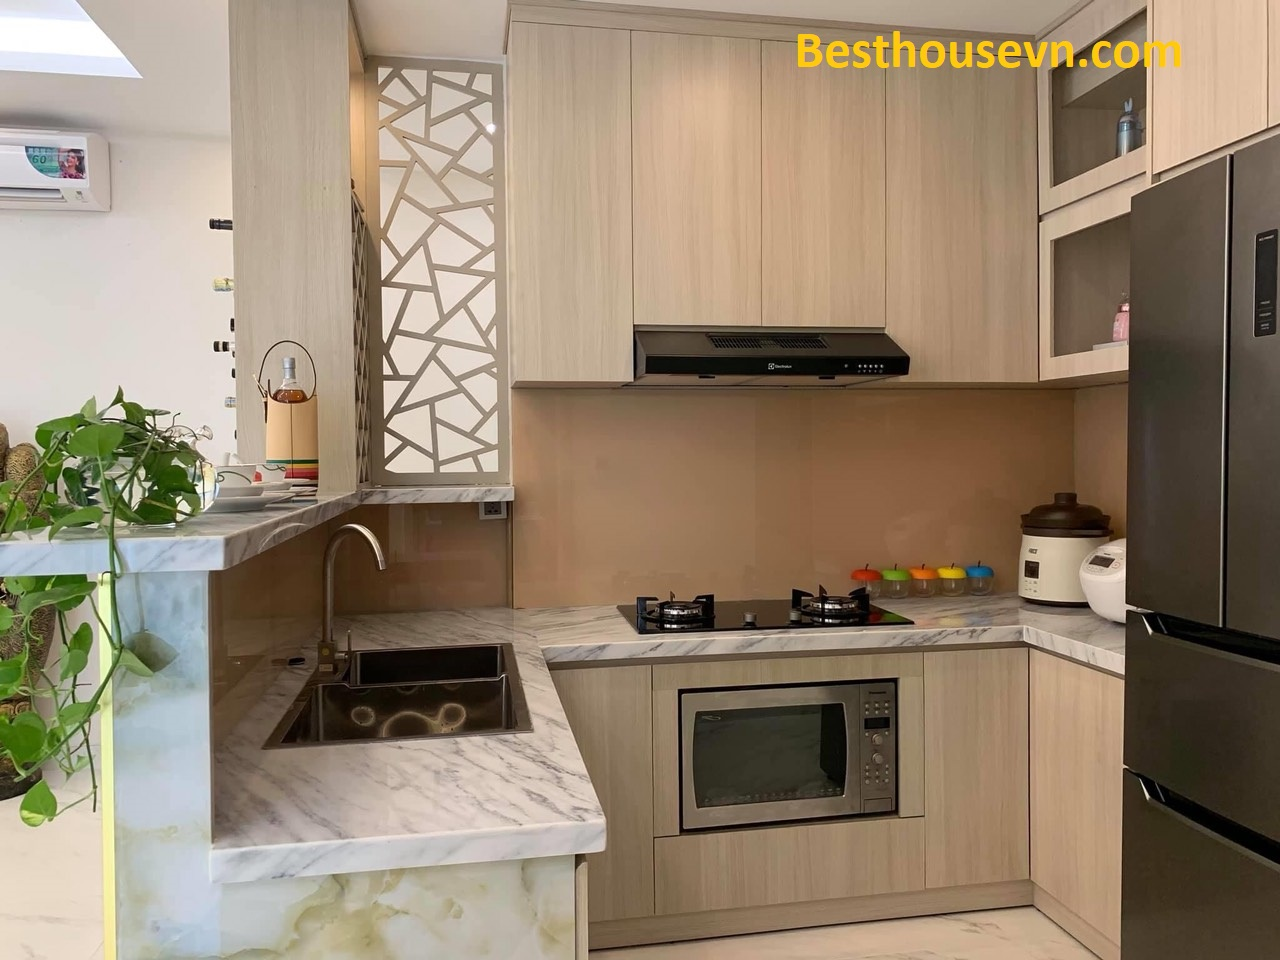 Mitown-89sqm-apartment-for-rent-in-phu-my-hung-district-7-hcmc-1